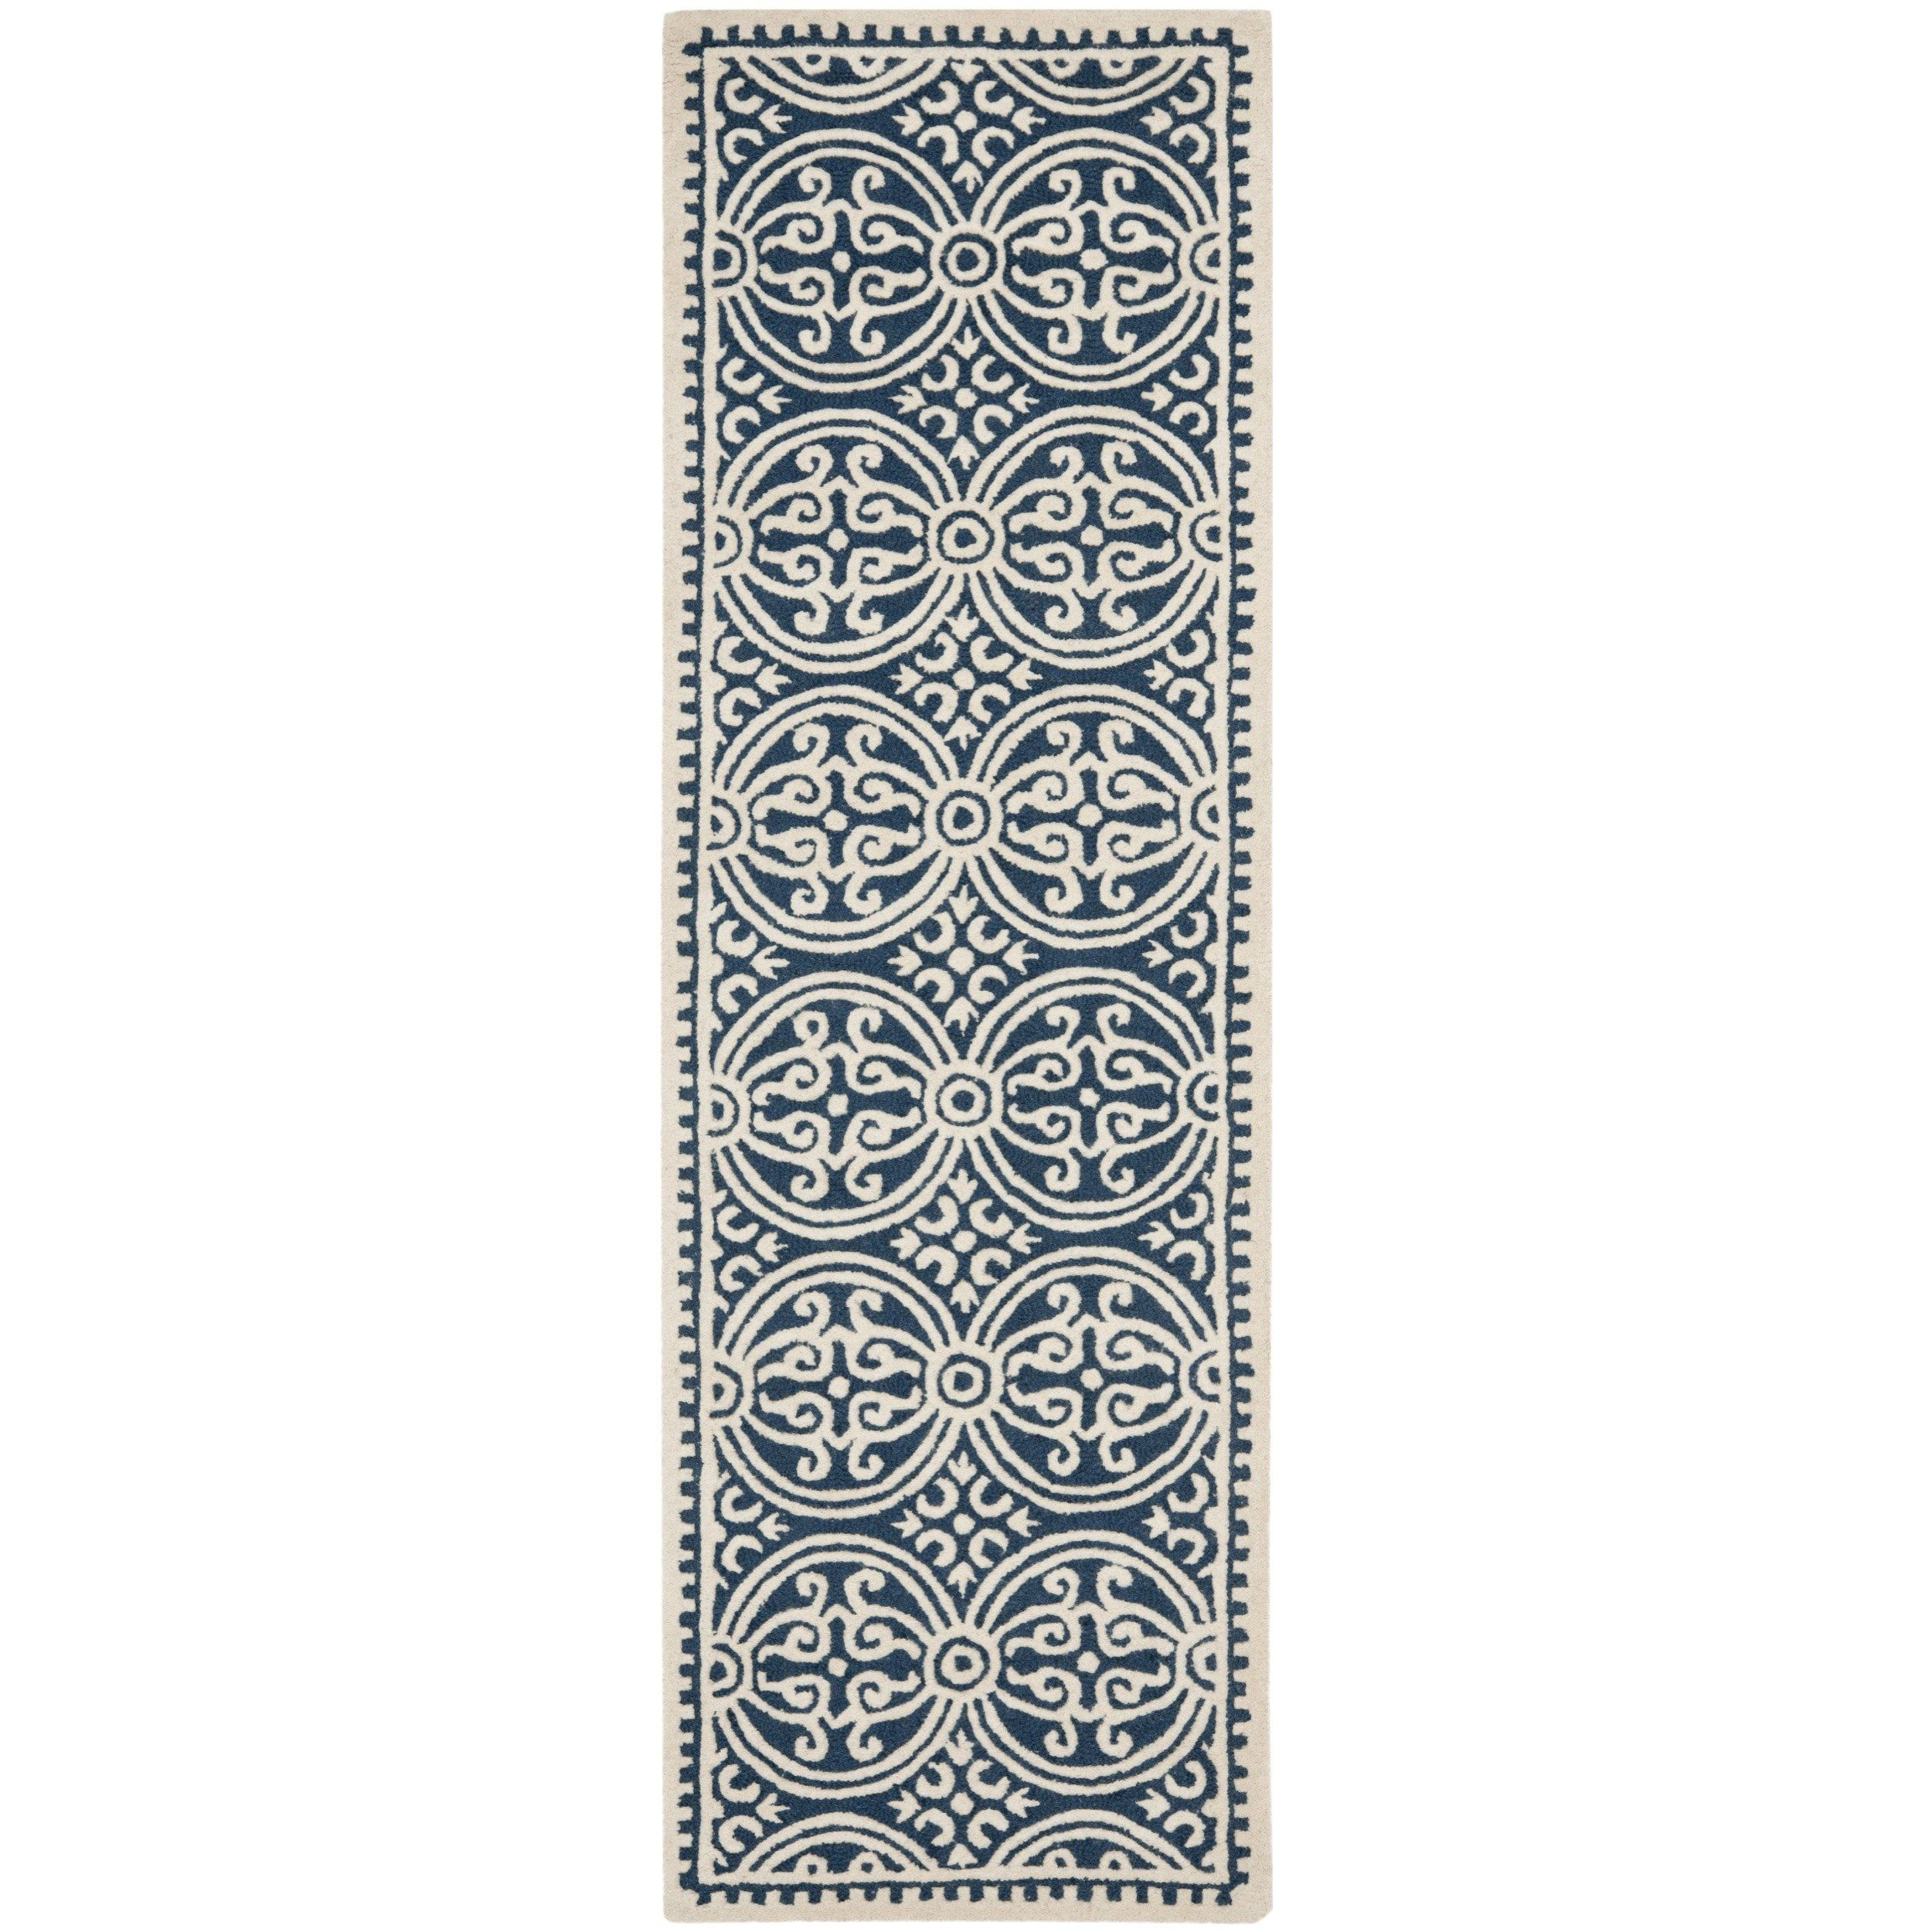 Safavieh Handmade Moroccan Cambridge Navy Blue Wool Rug In 2019 Rug Texture Area Rugs Rugs